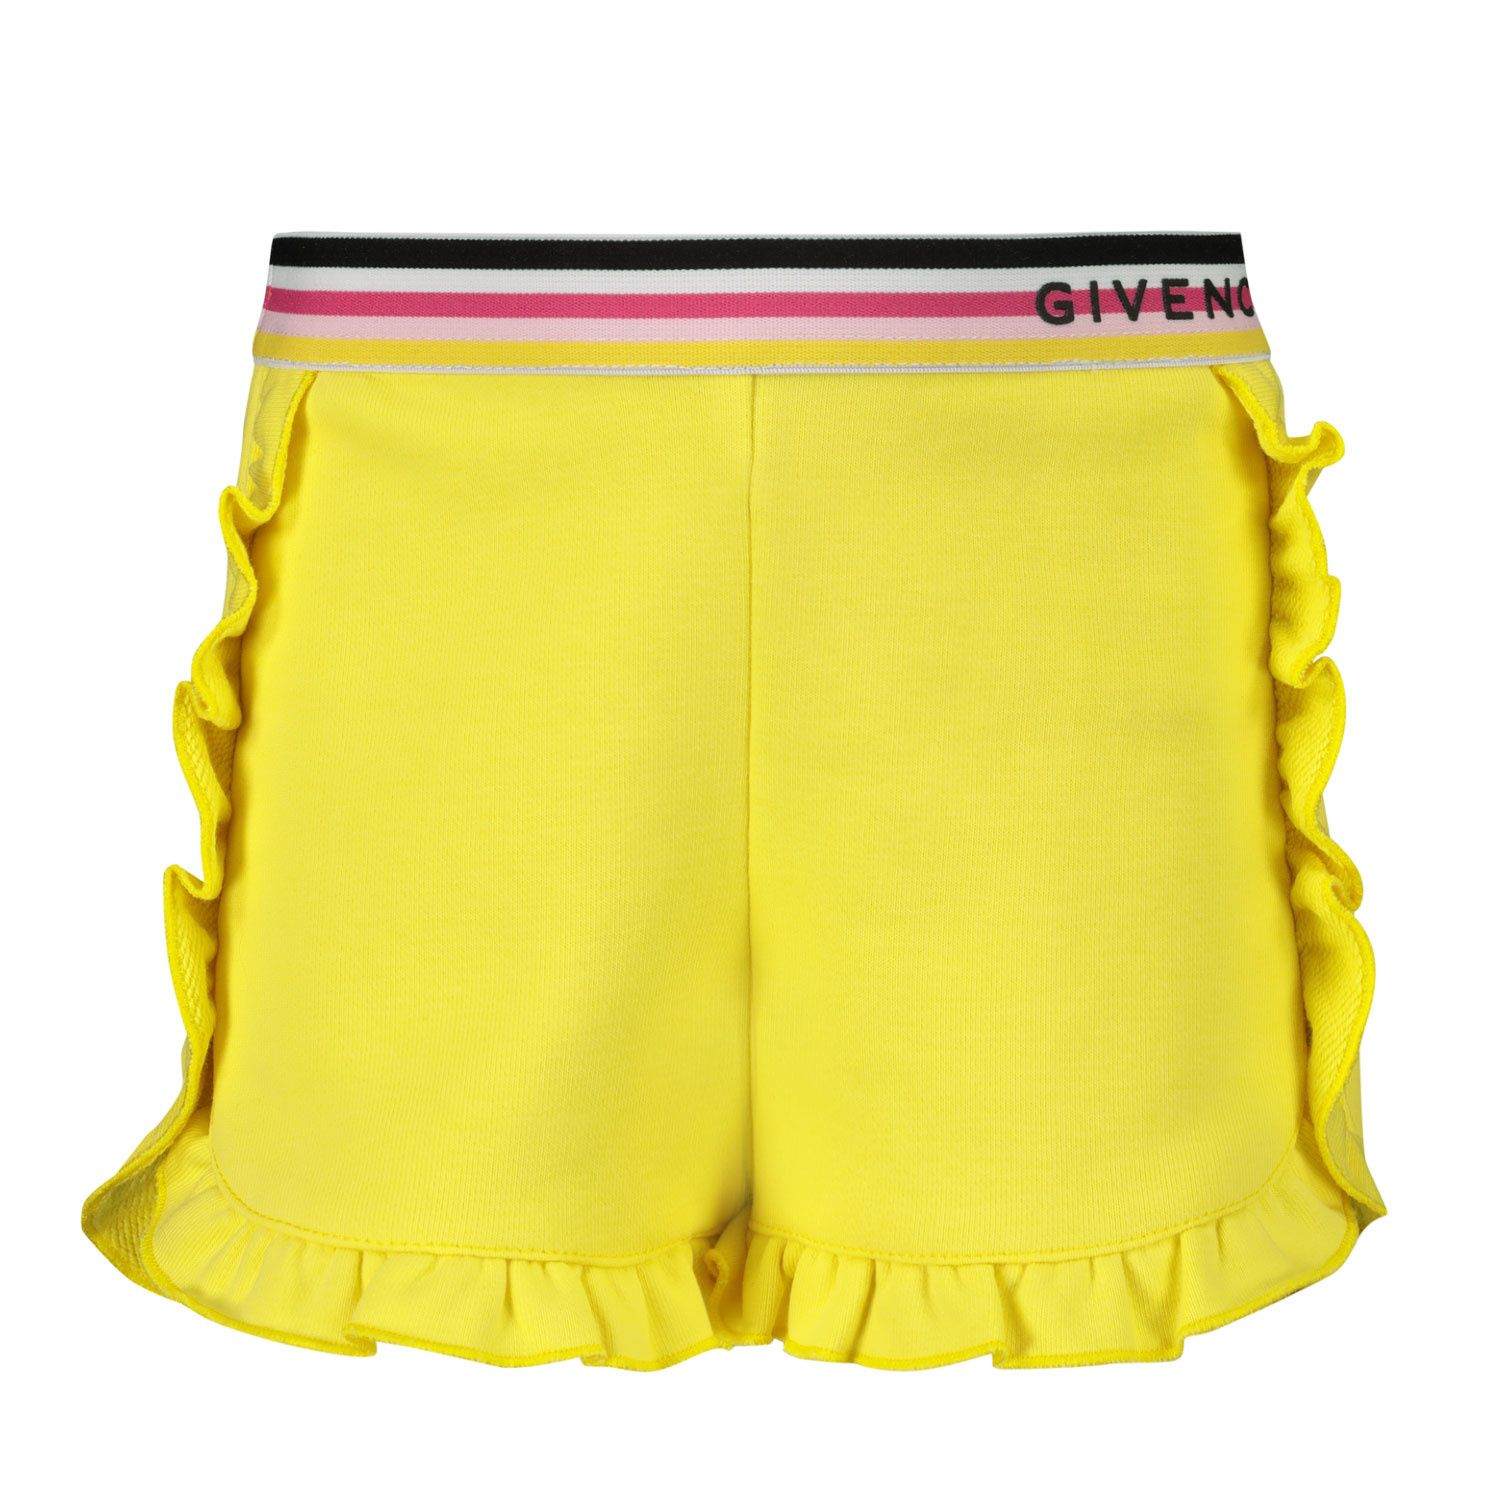 Picture of Givenchy H04101 baby shorts yellow